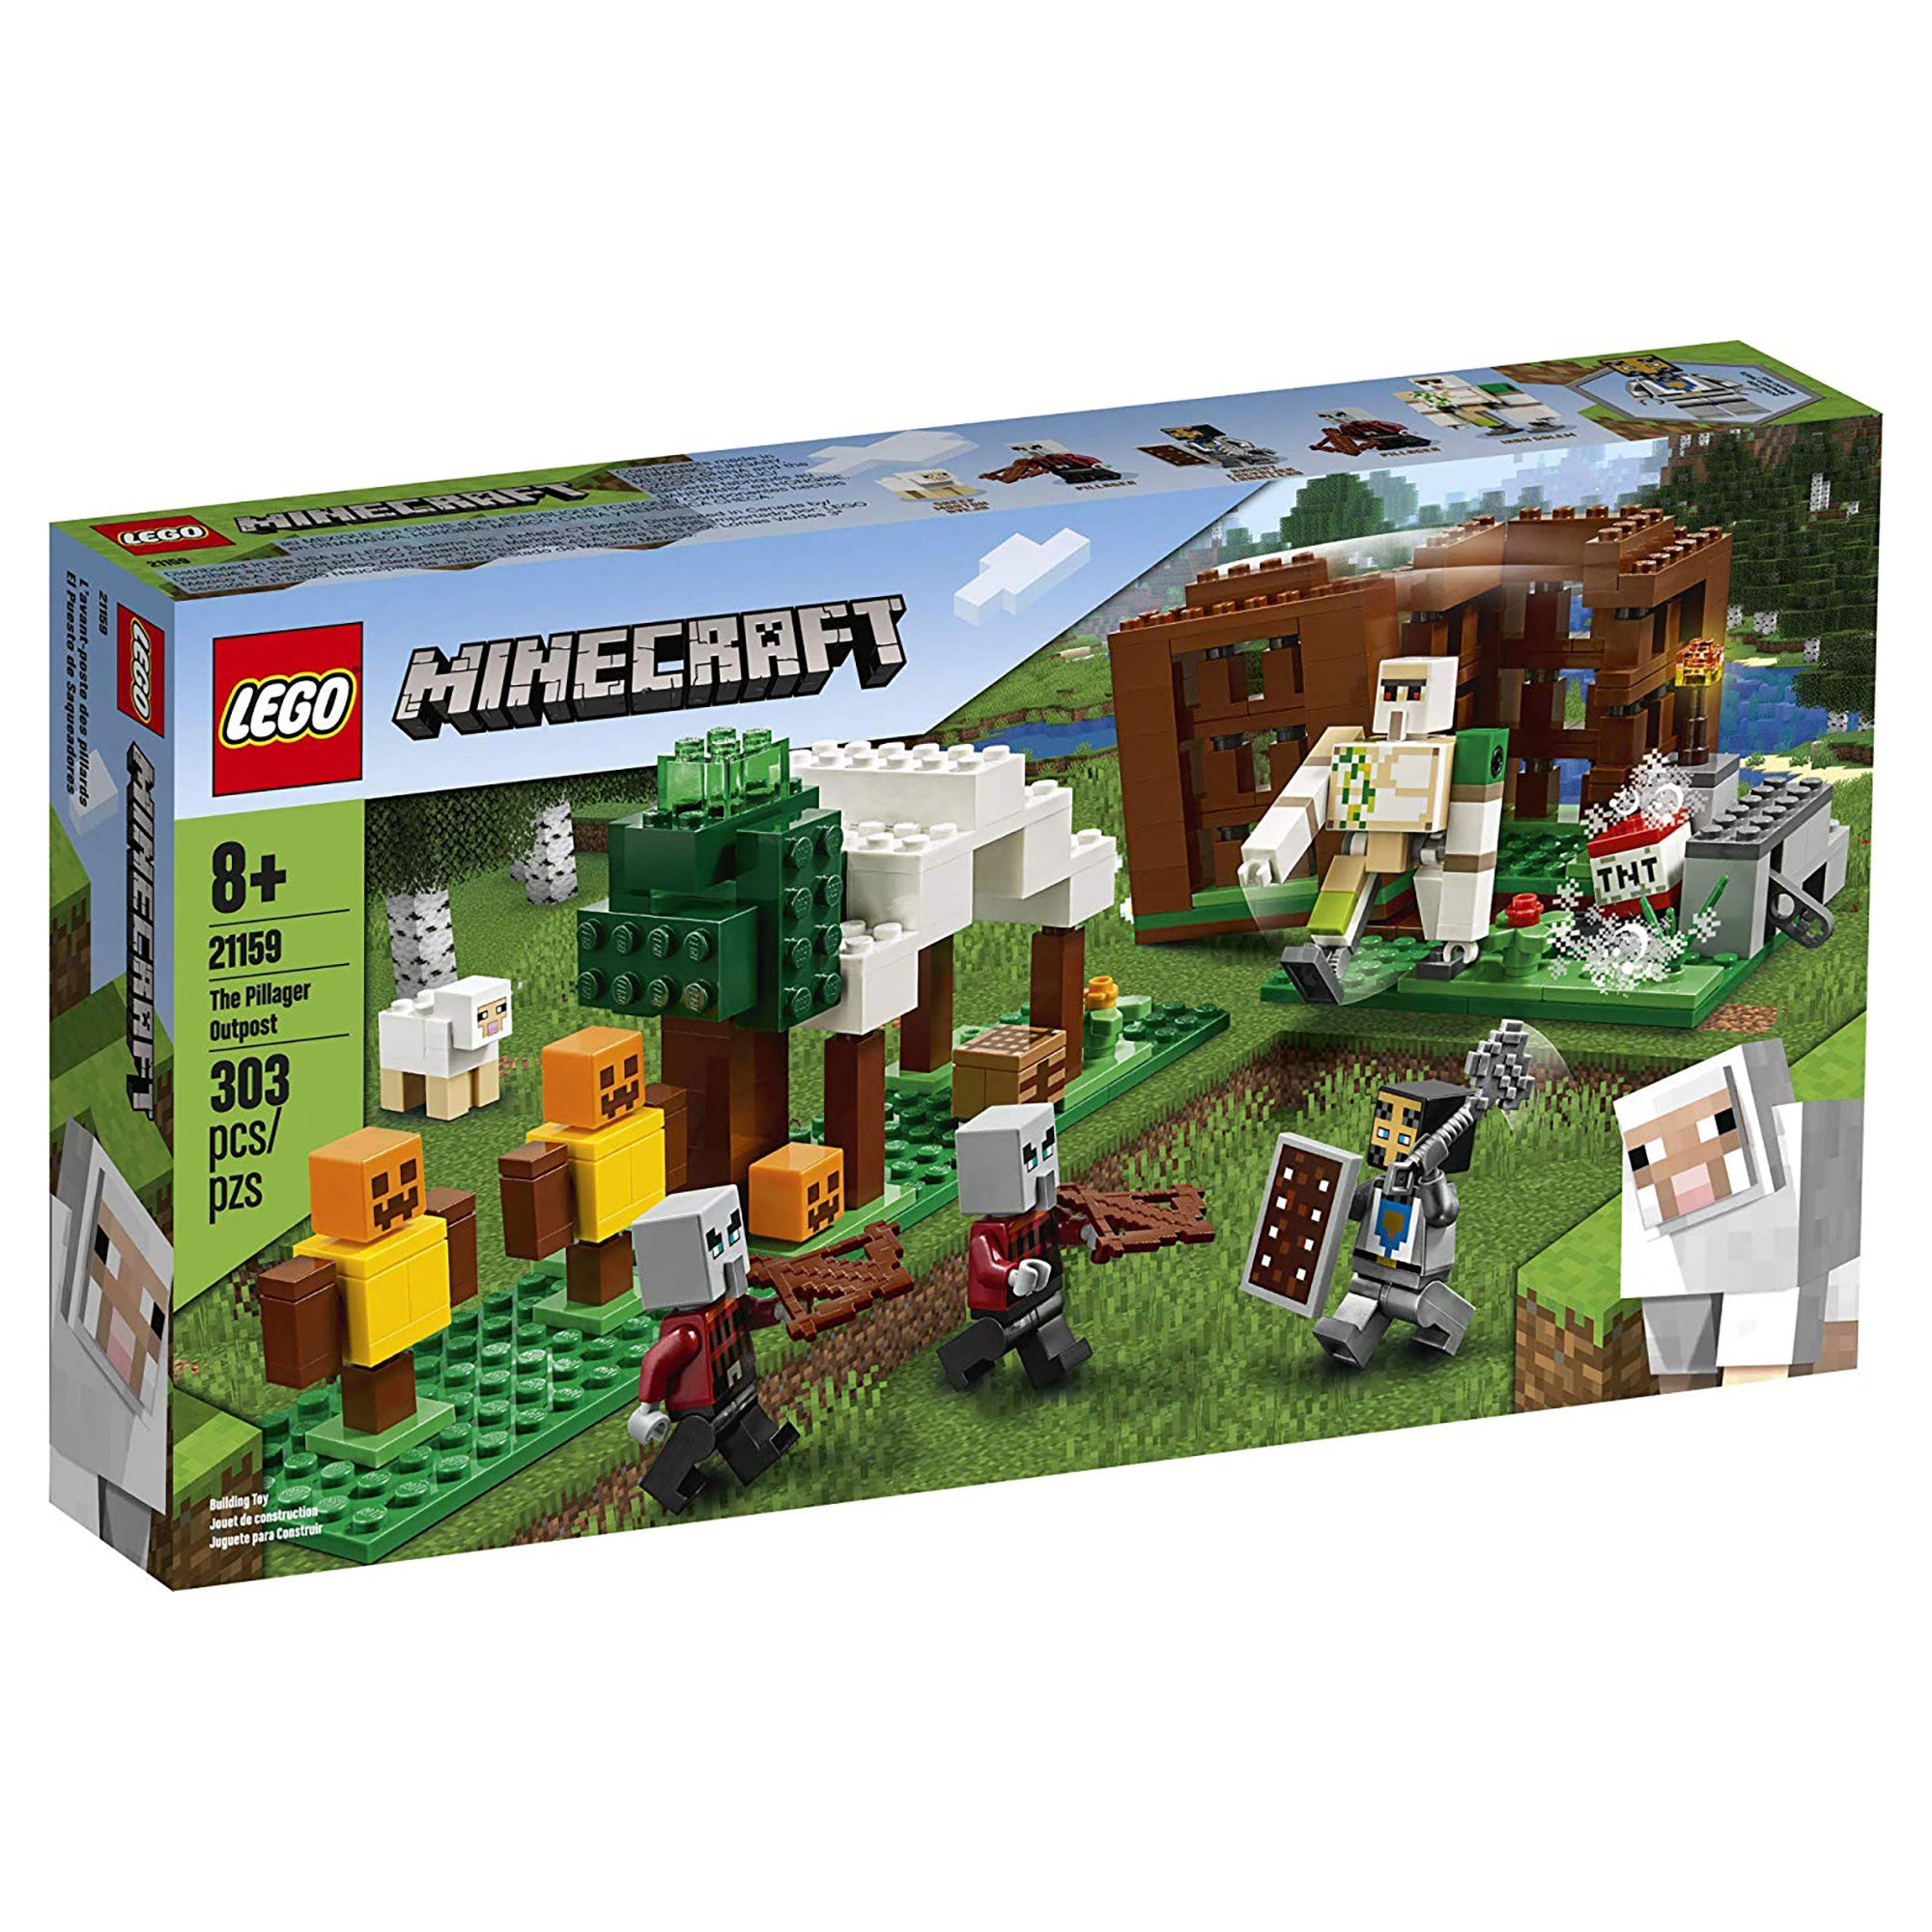 Minecraft The Pillager Outpost LEGO Building Set – Official